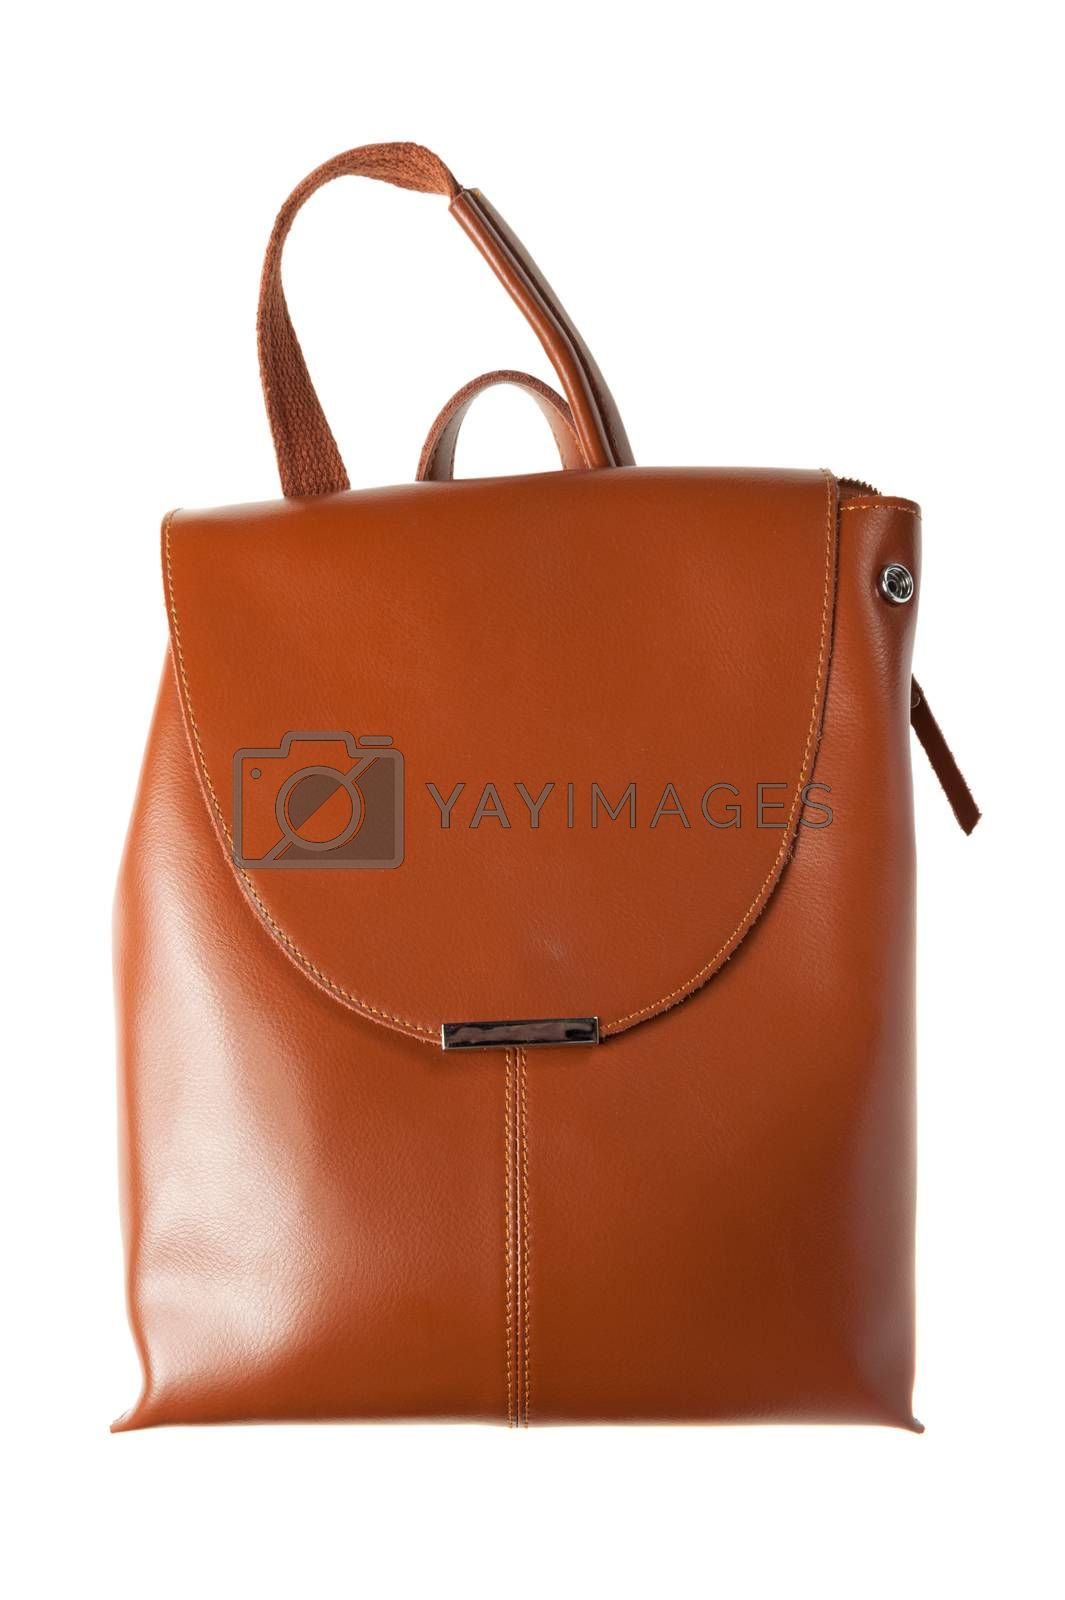 women bag backpack isolated on white background